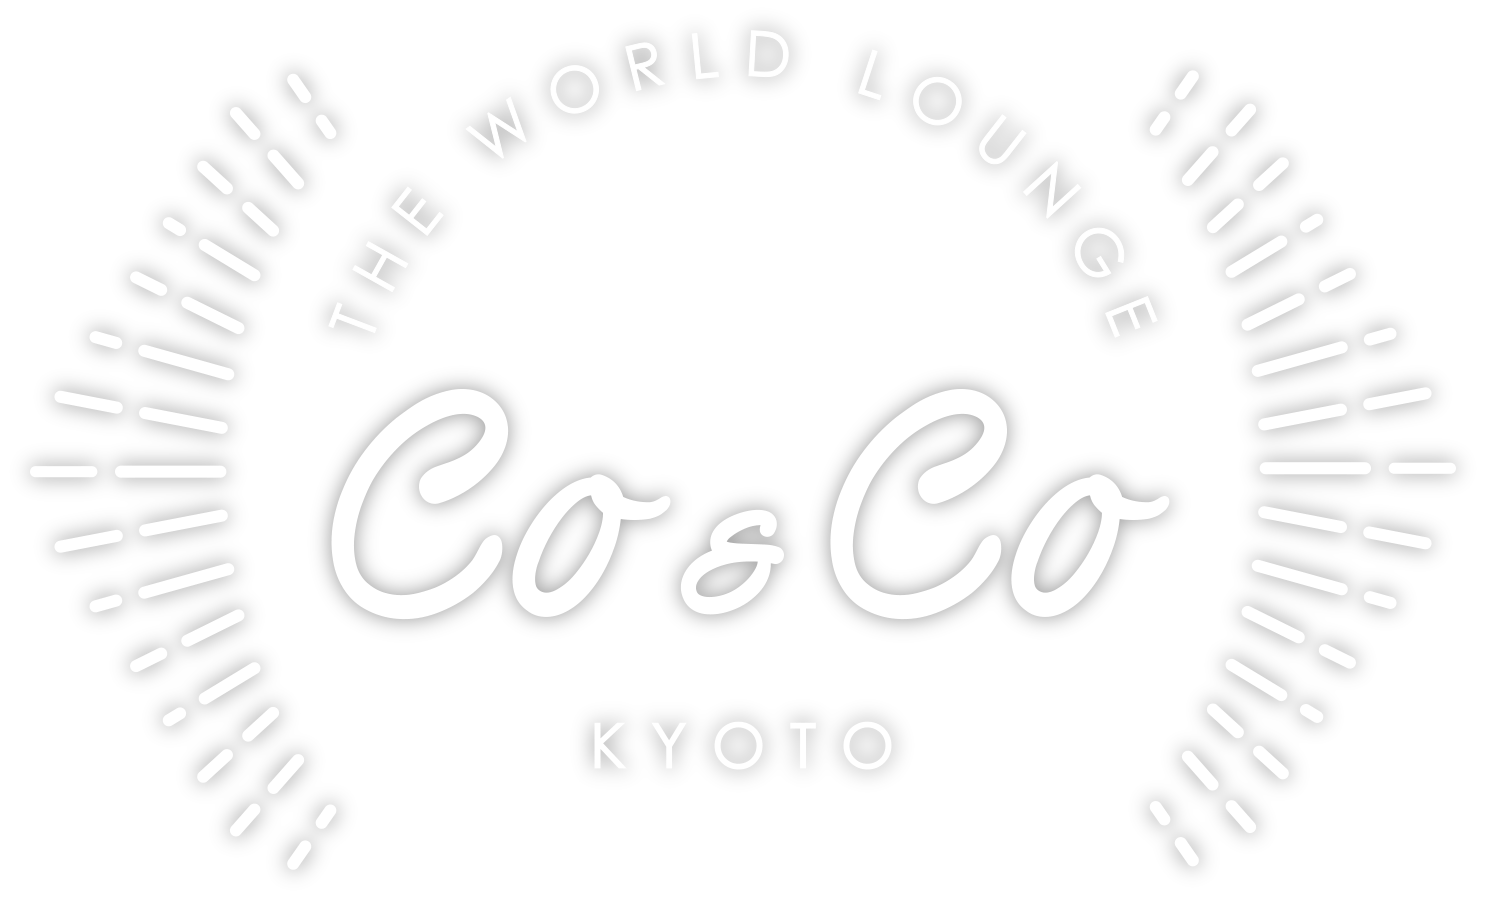 THE WORLD LOUNGE Co&Co KYOTO